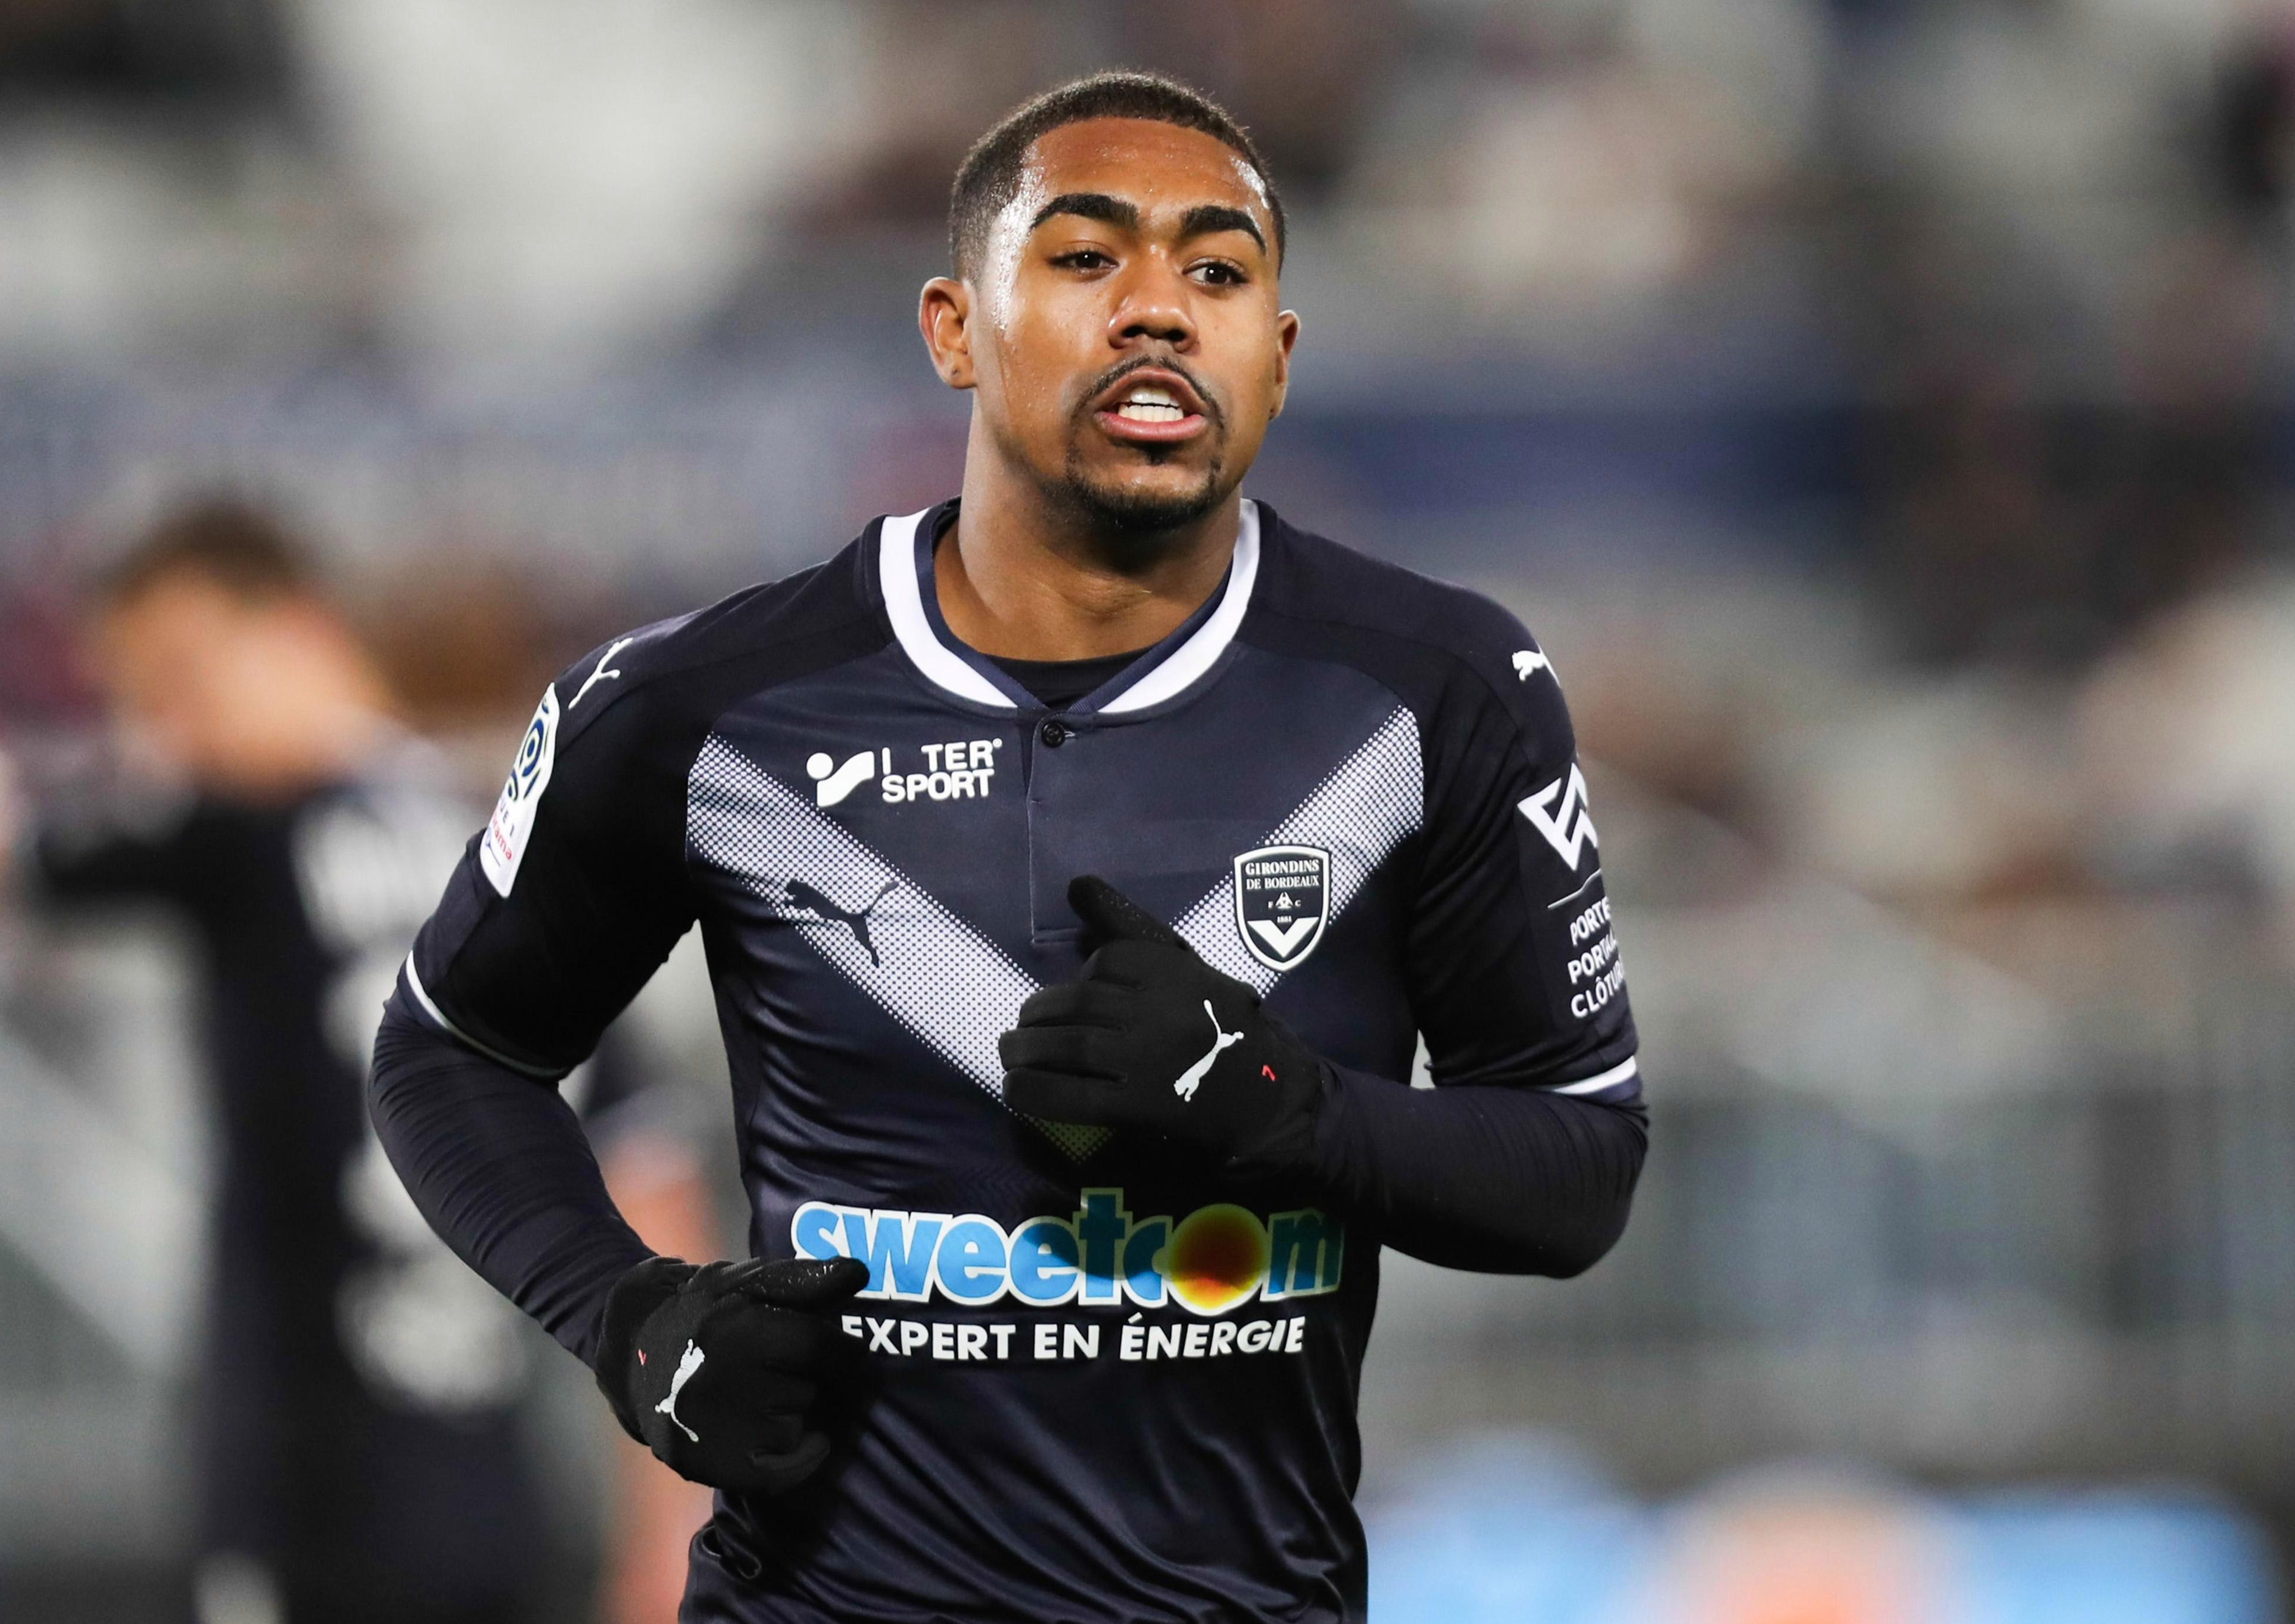 Malcolm joined Bordeaux from Corinthians in January 2016